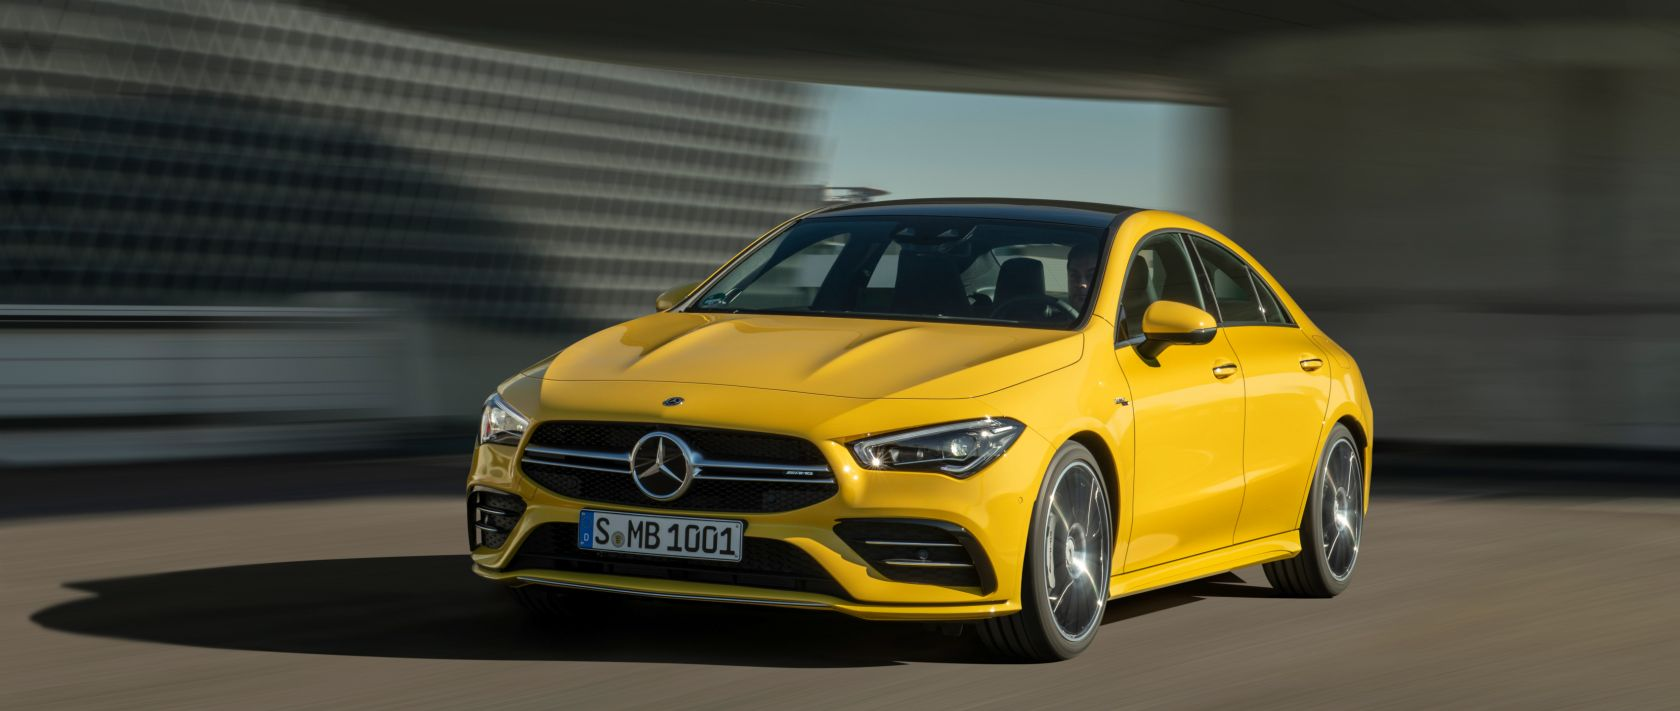 17-mercedes-benz-2019-mercedes-amg-cla-35-4matic-c118-sun-yellow-3400×1440